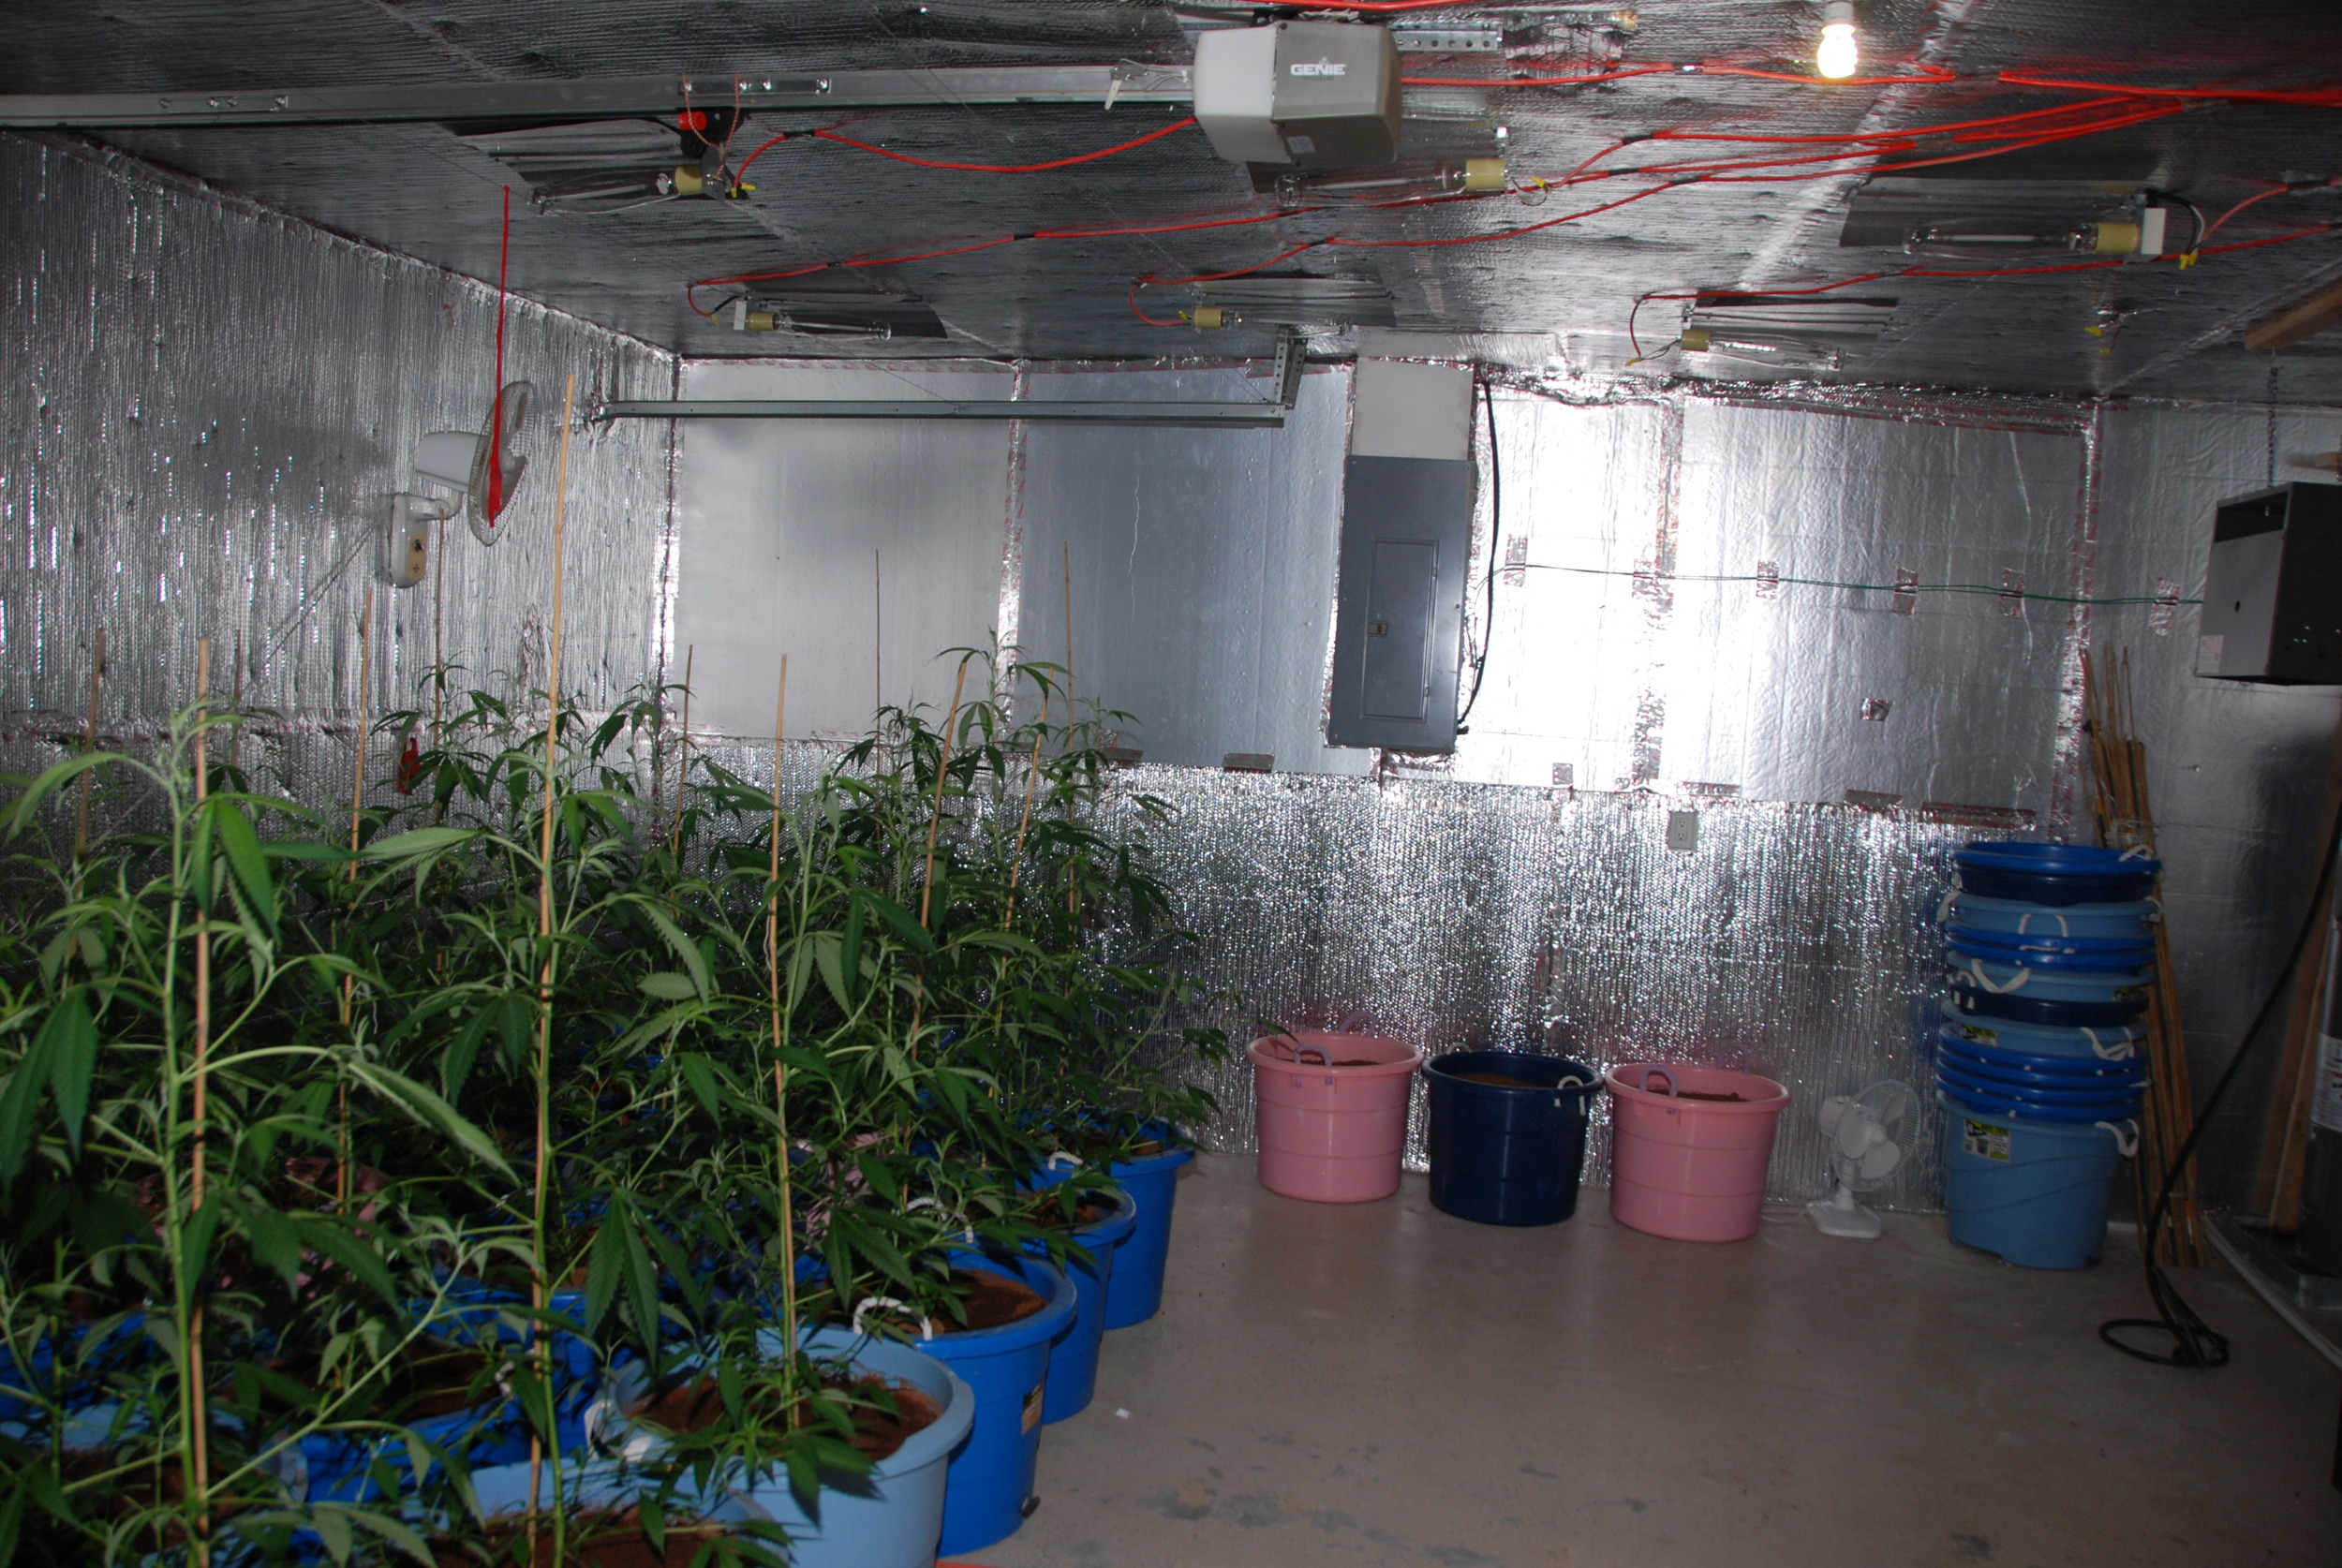 PHOTO: Once inside, Police and Fire personnel located an elaborate marijuana grow operation. Once it was determined that there were no occupants in the home, Police and Fire personnel vacated the residence andCape Coral Police began a narcotics investigation. (Photo Courtesy of Cape Coral Police Department)